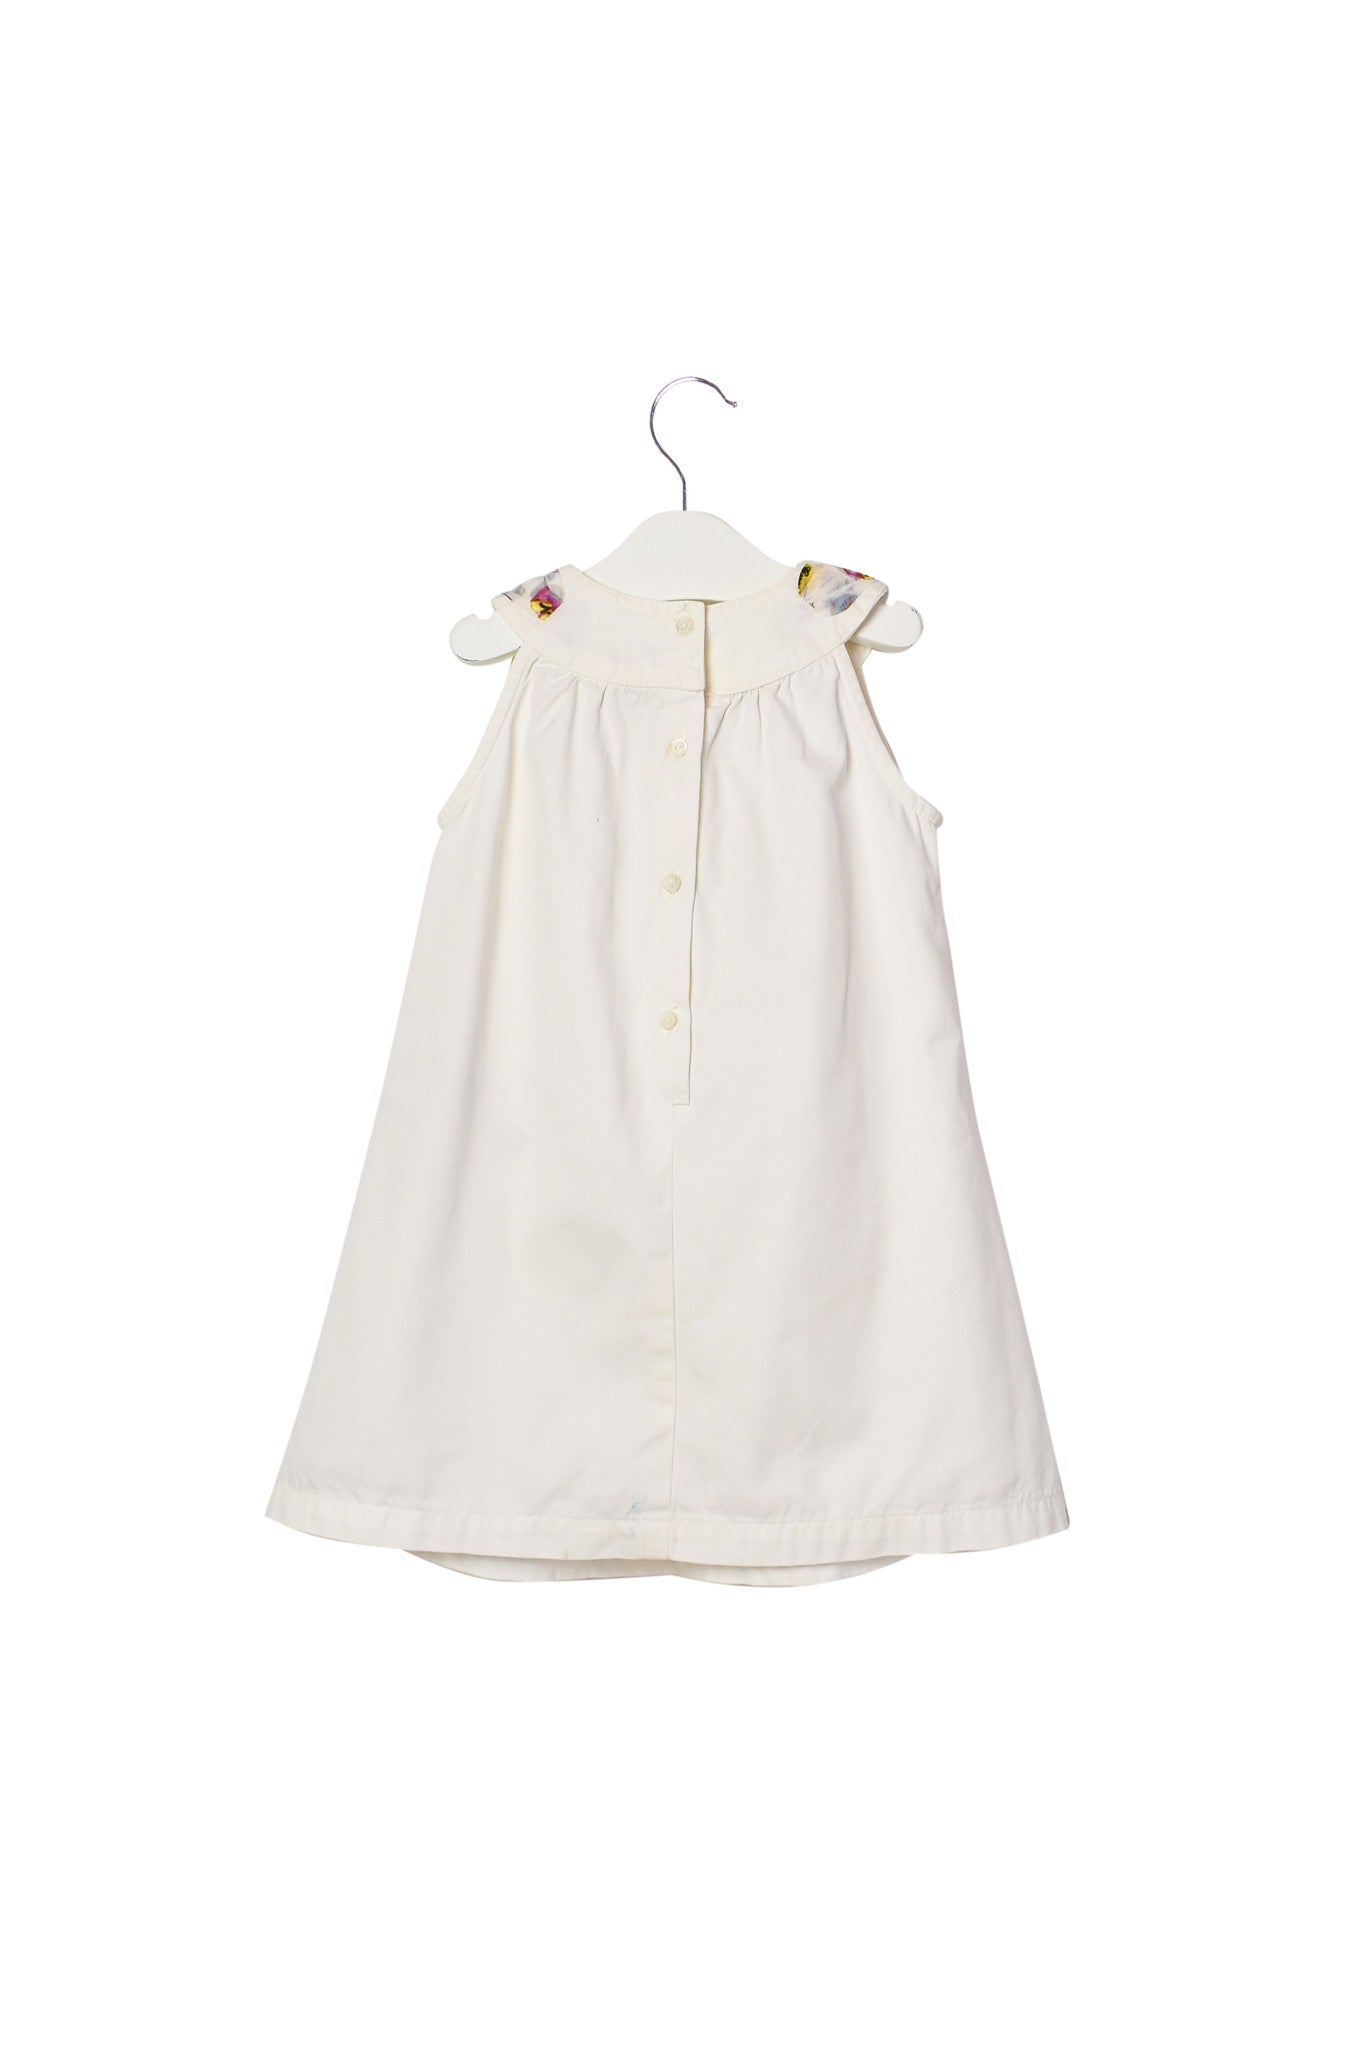 07eaeeff5 10003526 Gucci Baby~Dress 18-24M at Retykle